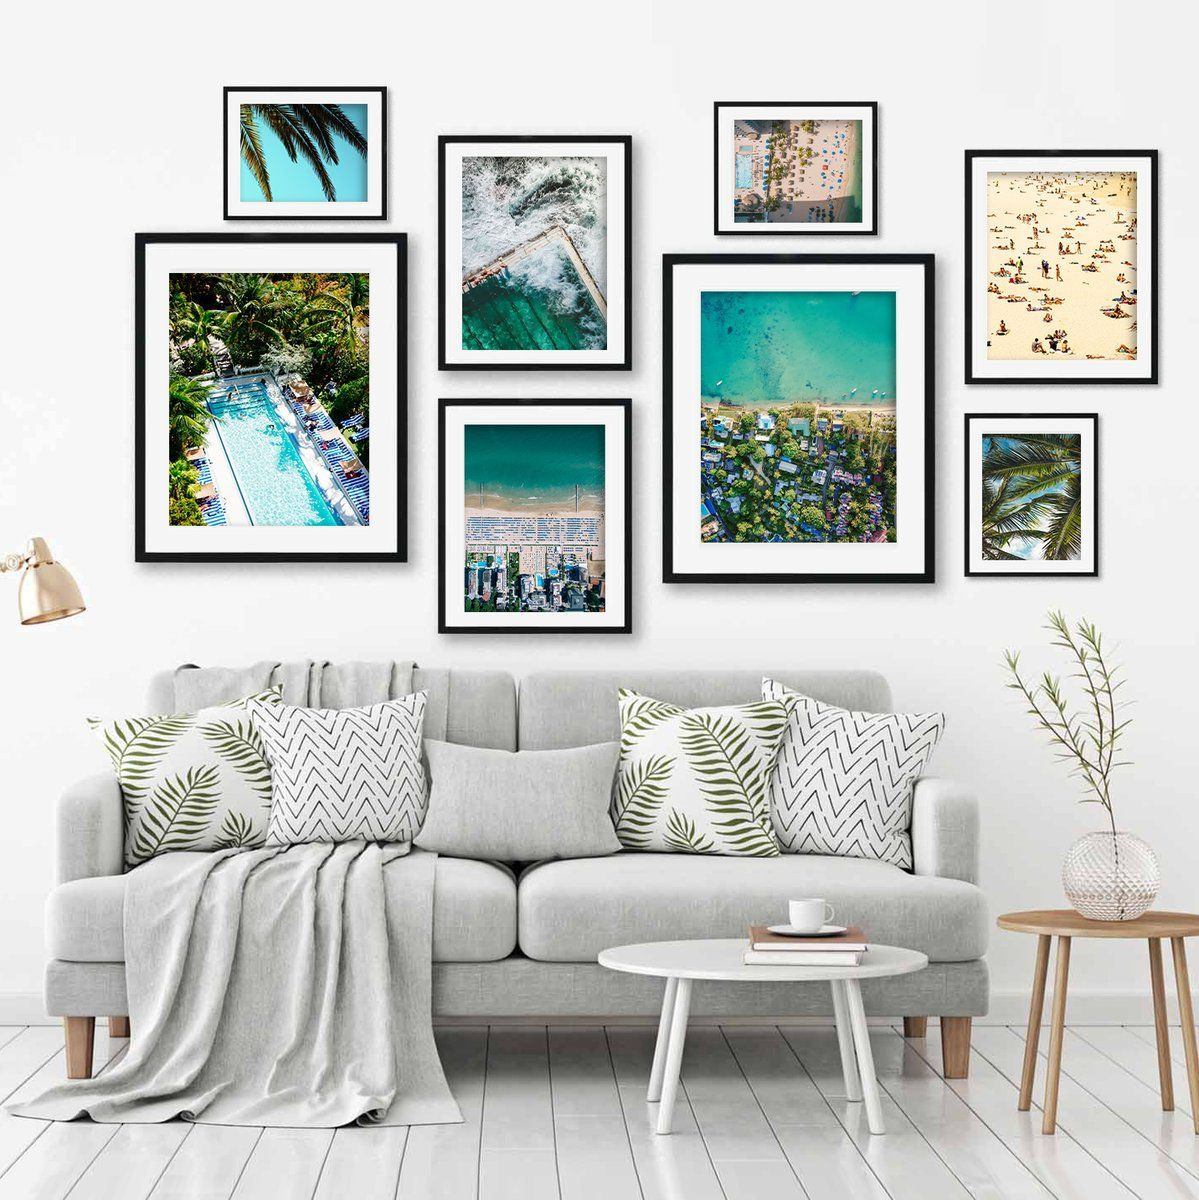 Adorn Your Walls With This Stunning Beach Print Set This Gallery Wall Contains Eight Fine Ar Gallery Wall Living Room Wall Art Prints Living Room Gallery Wall